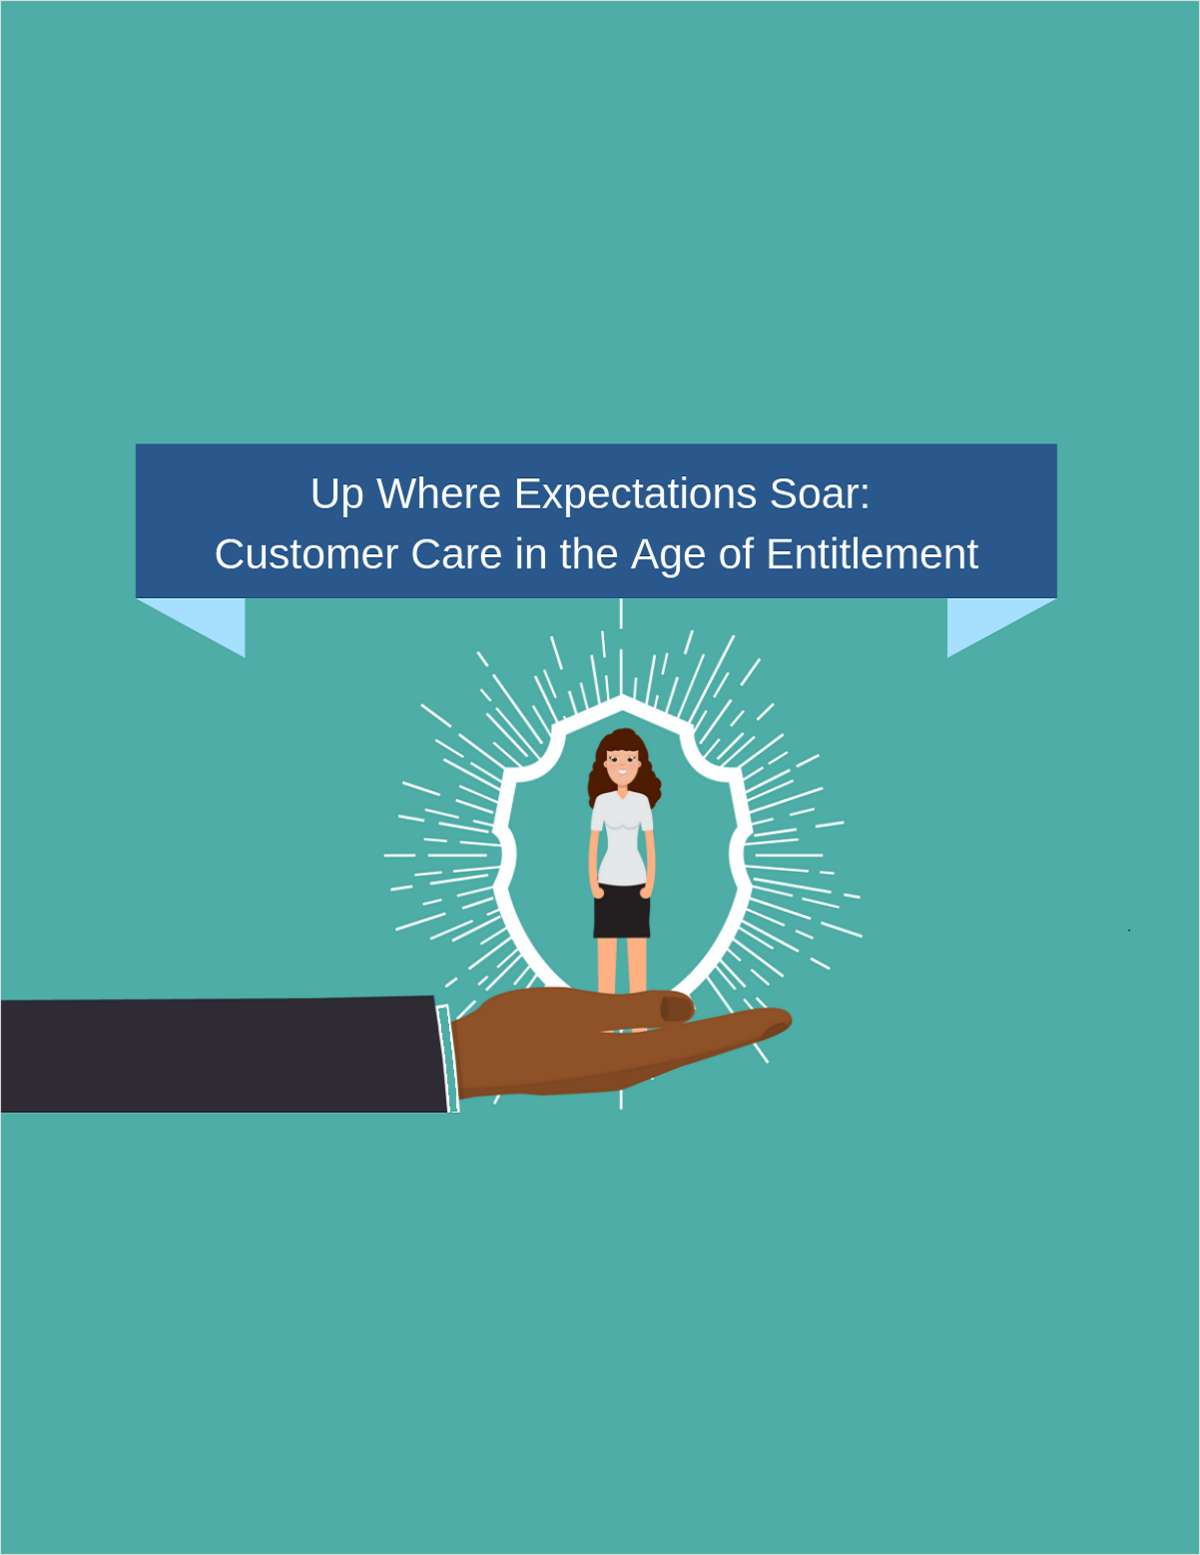 Up Where Expectations Soar: Customer Care in the Age of Entitlement